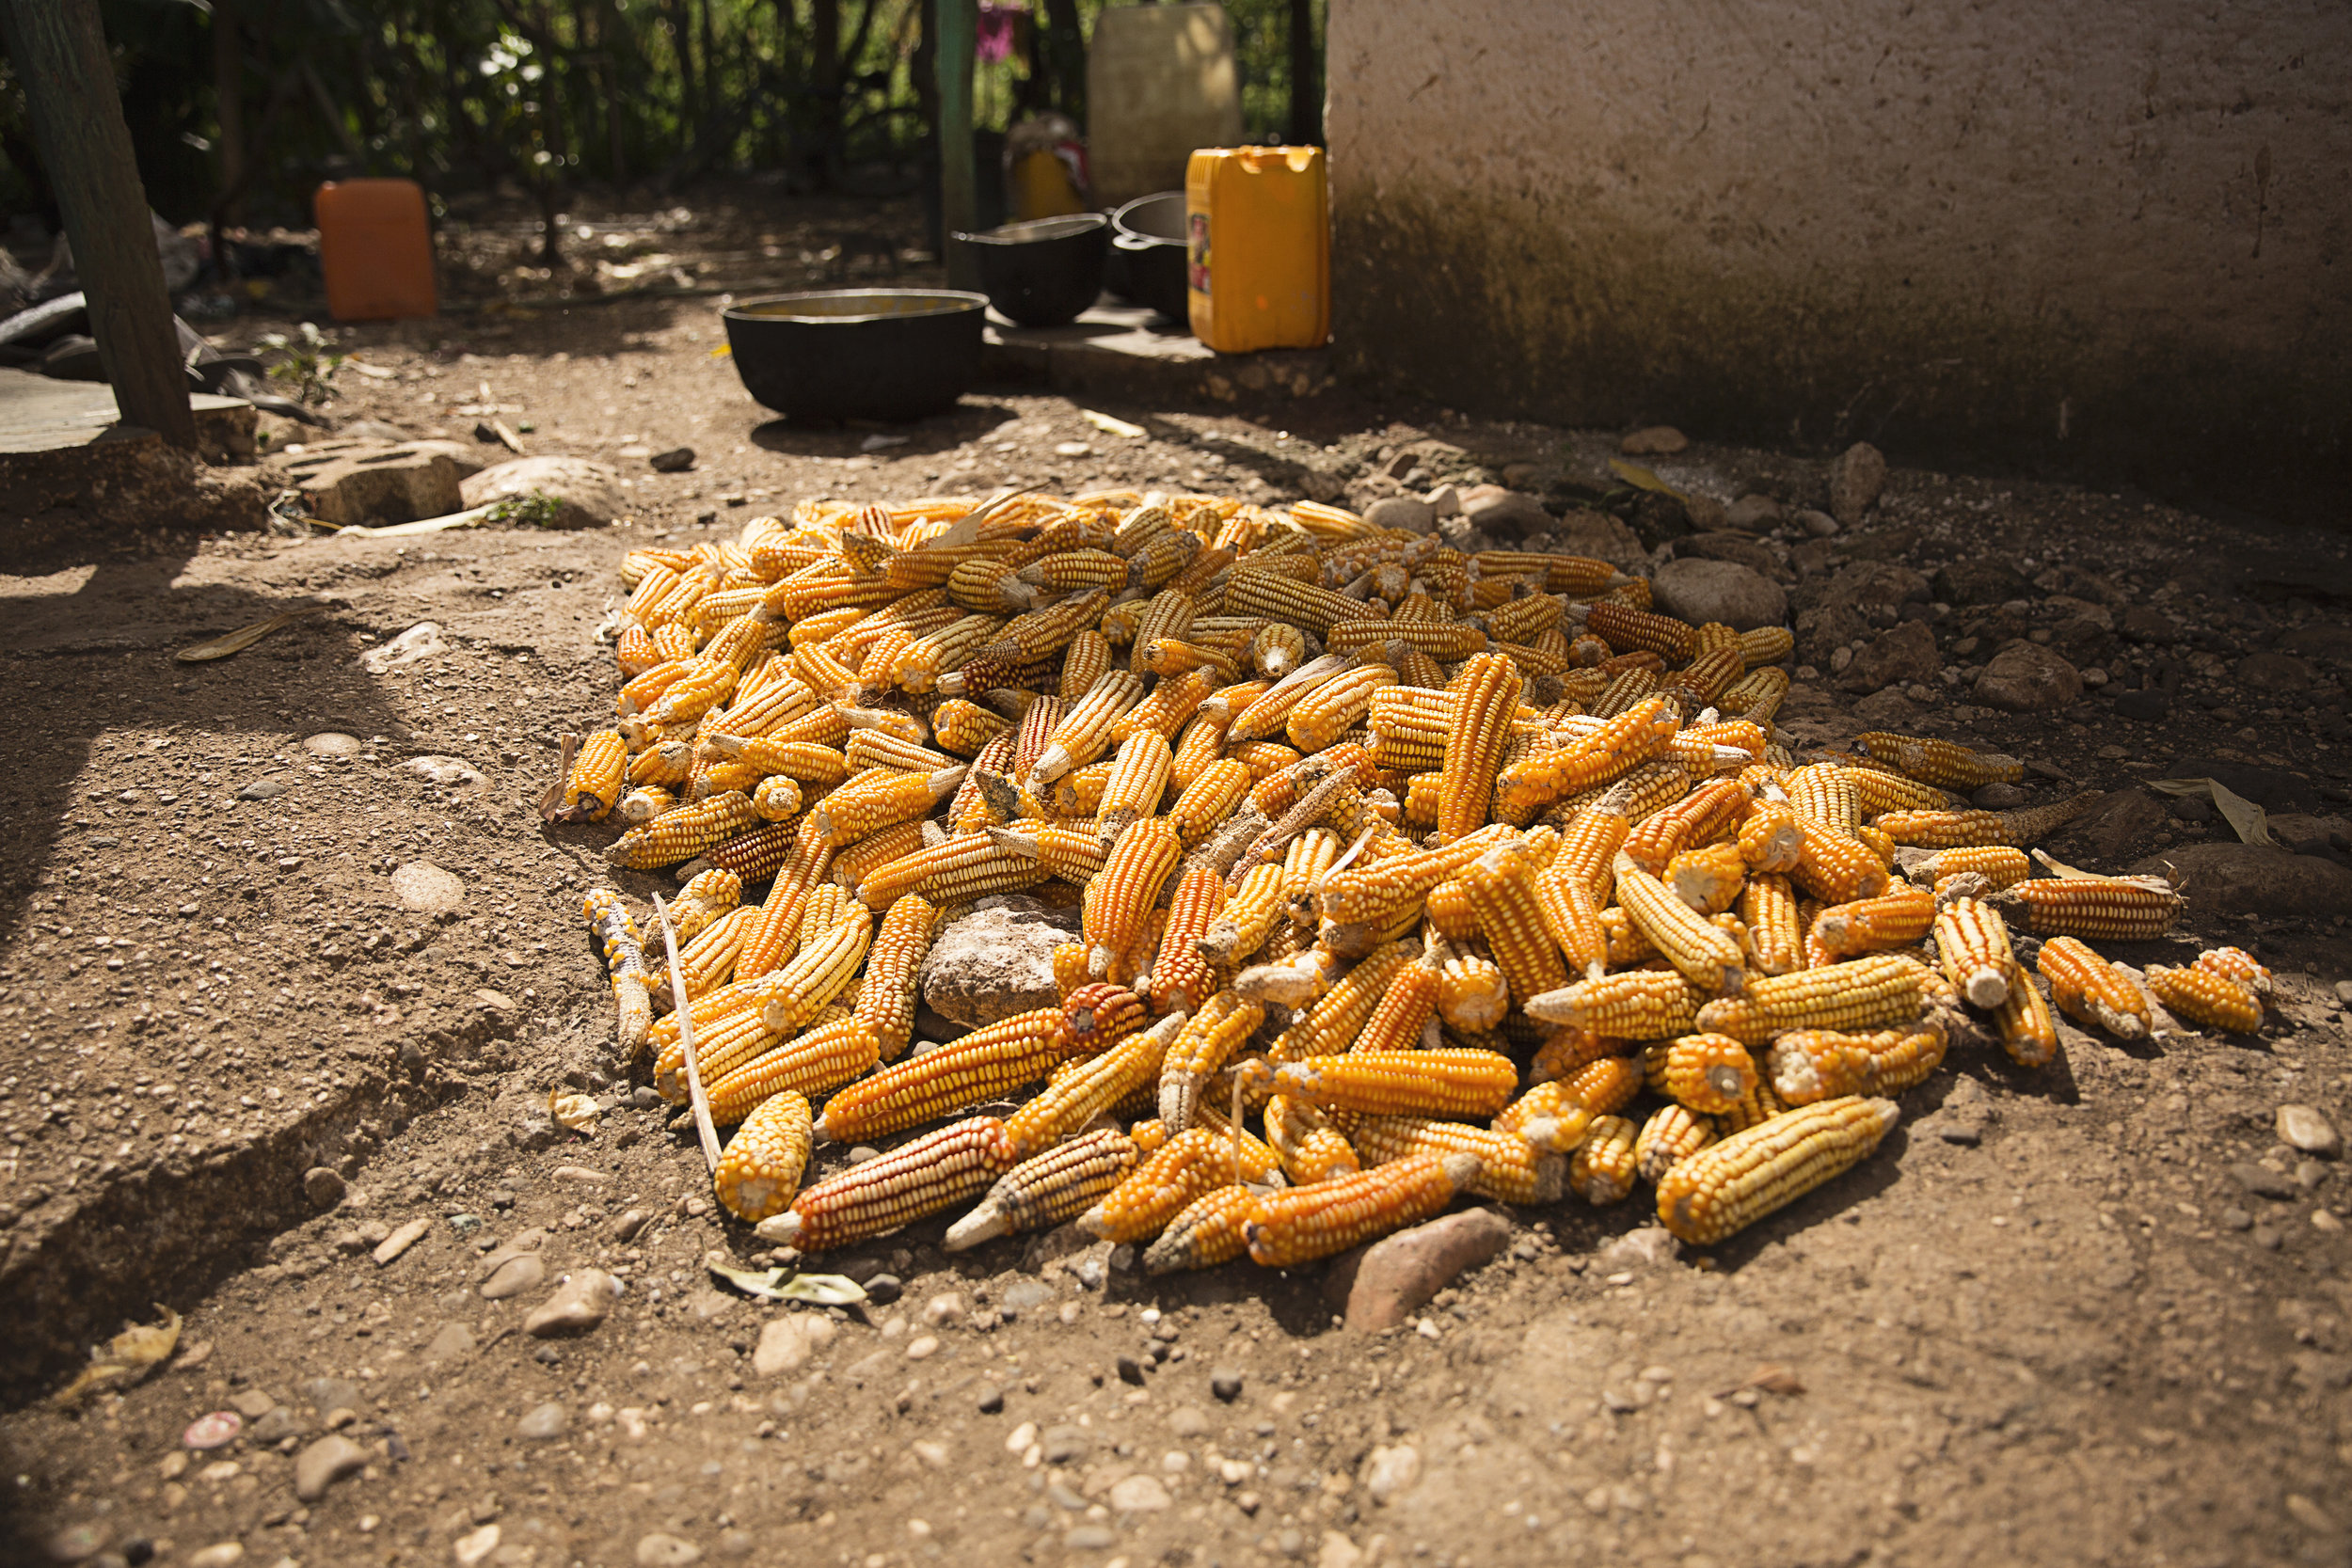 Being headquartered in Indiana, we're very familiar with corn. On our last trip, seeing these ears piled up in the Haitian market reminded us of home!